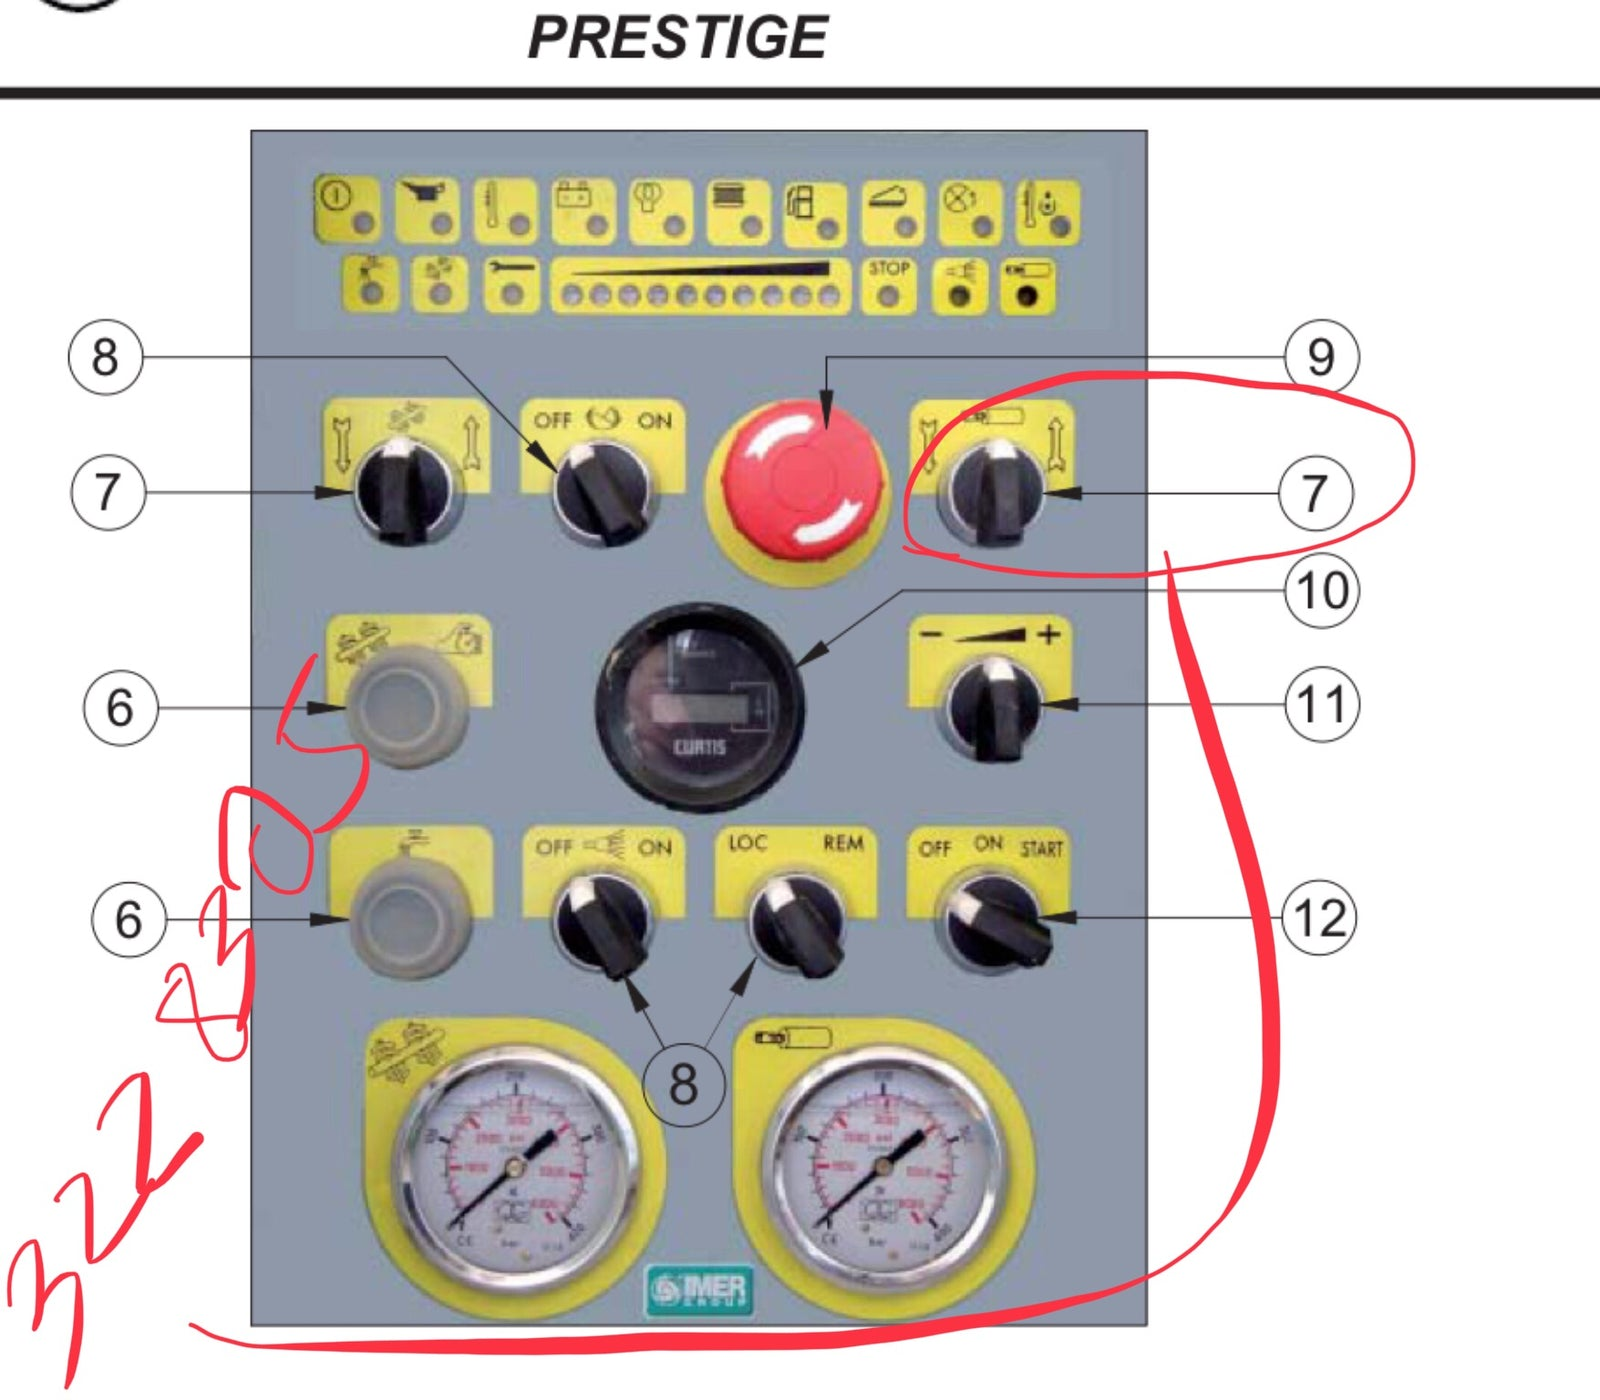 IMER Part Number 3228305. R/S Forward and Reverse Switch  ( 2 position) on Control Panel IMER Prestige Pump